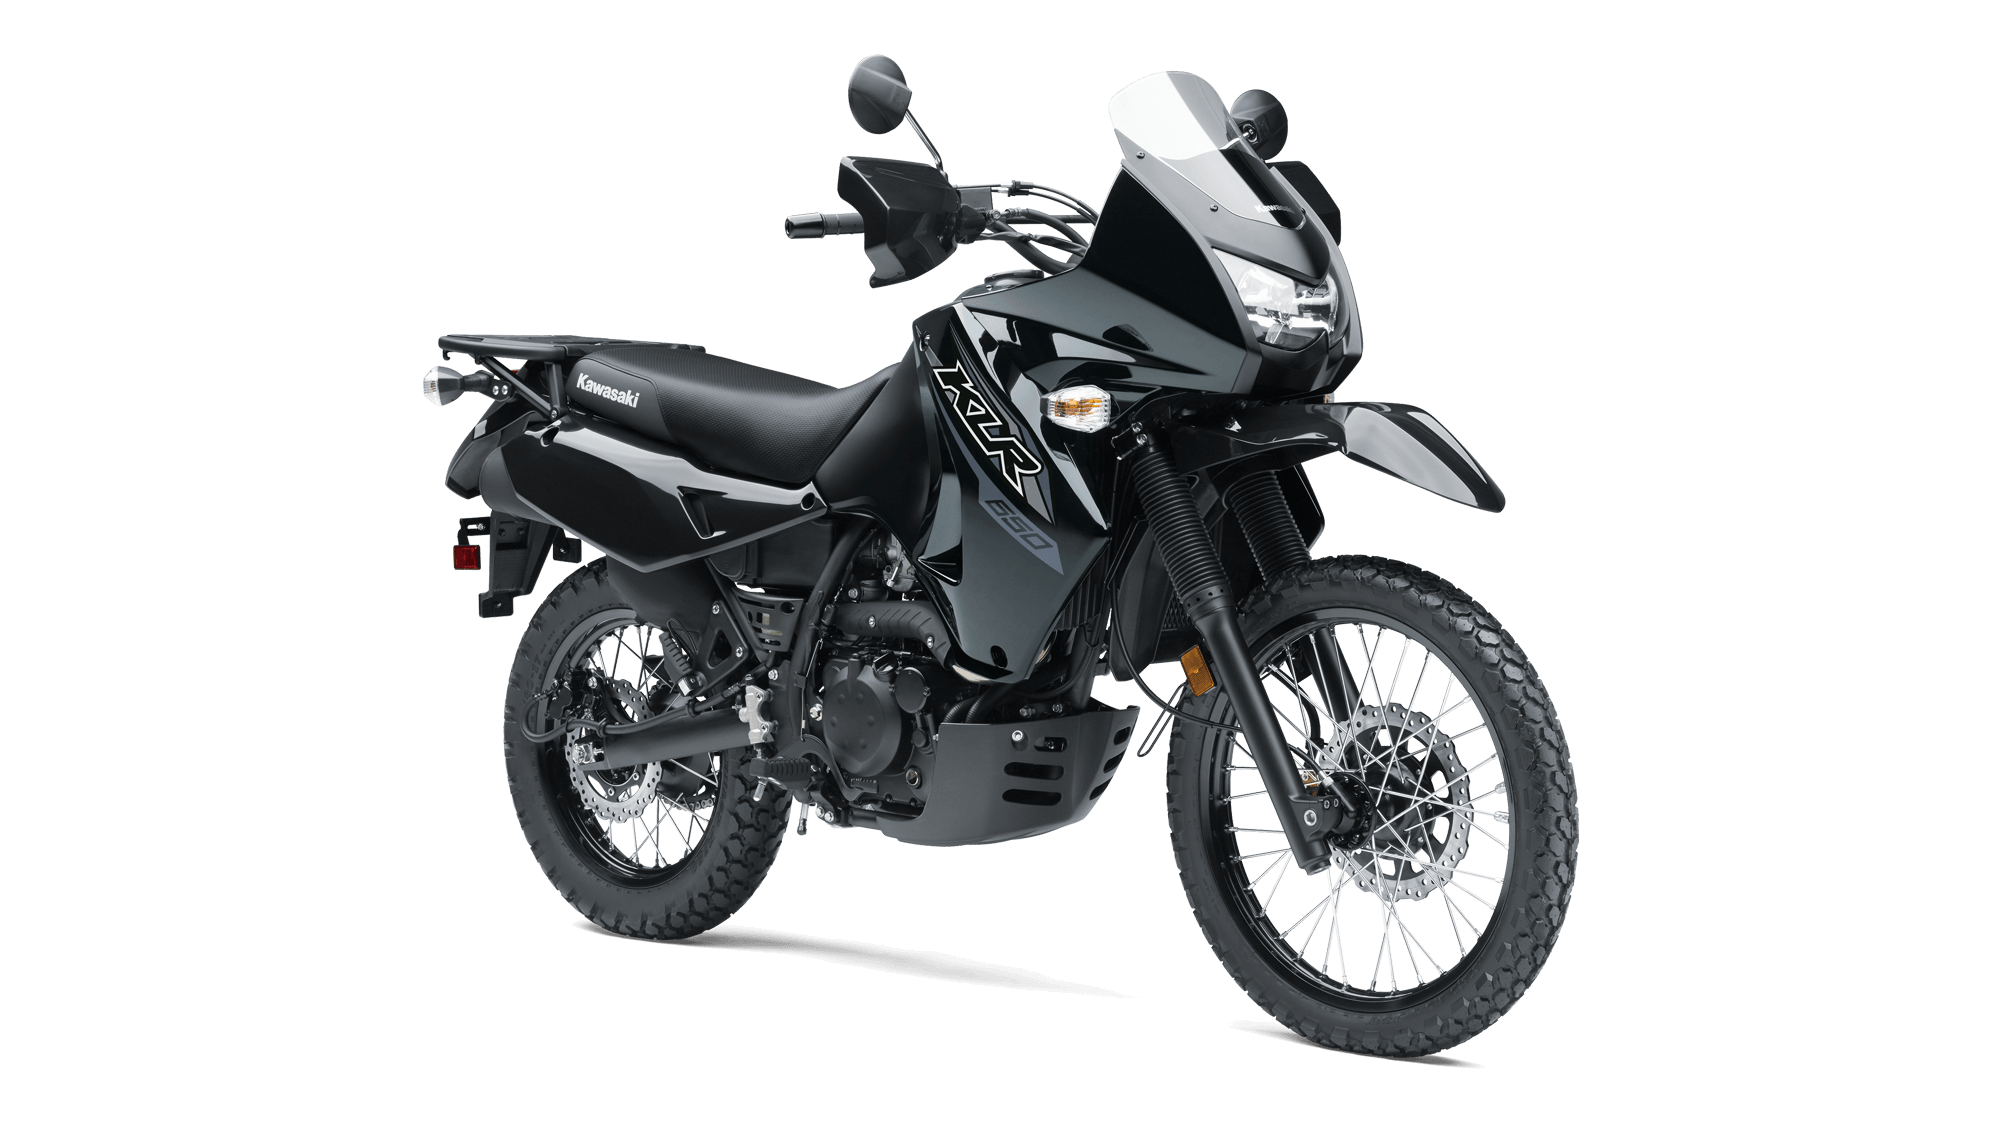 2018 Klr 650 Klx Motorcycle By Kawasaki. Kawasaki. Free Auto Wiring Diagrams 2006 Kawasaki Klr650 At Scoala.co